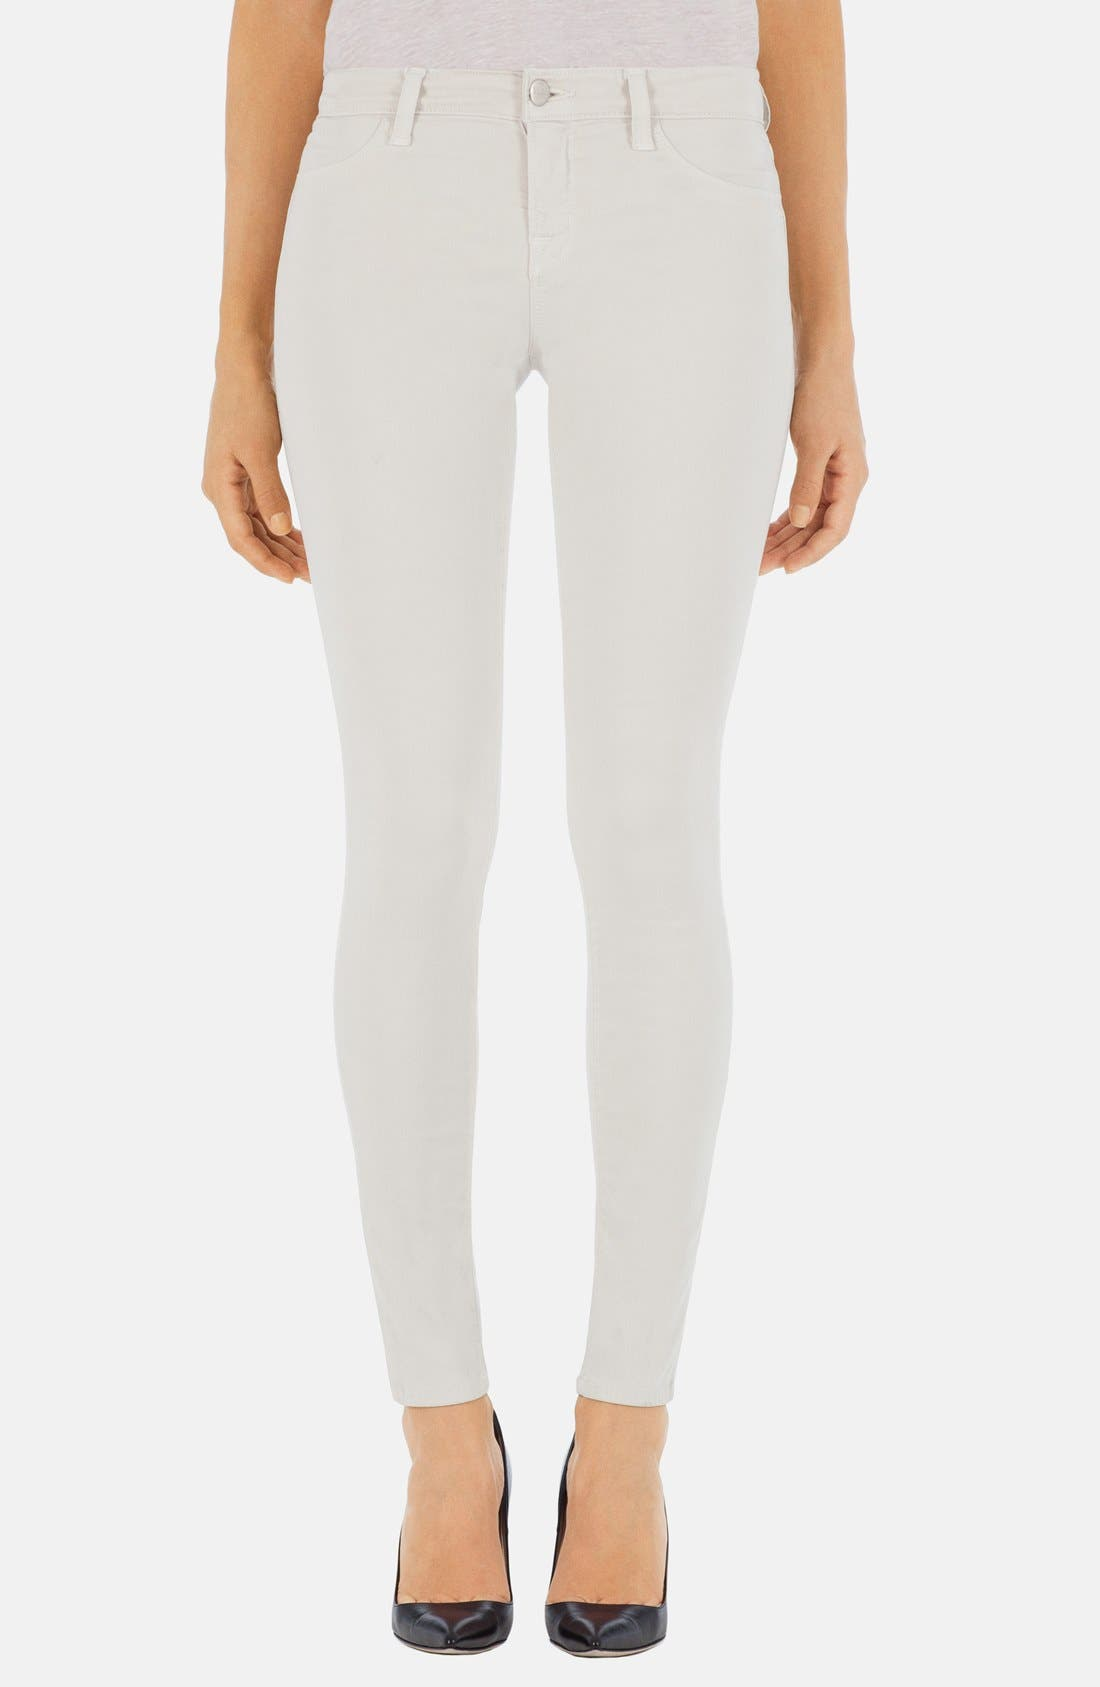 Alternate Image 1 Selected - J Brand '485' Mid Rise Super Skinny Jeans (Chalk)